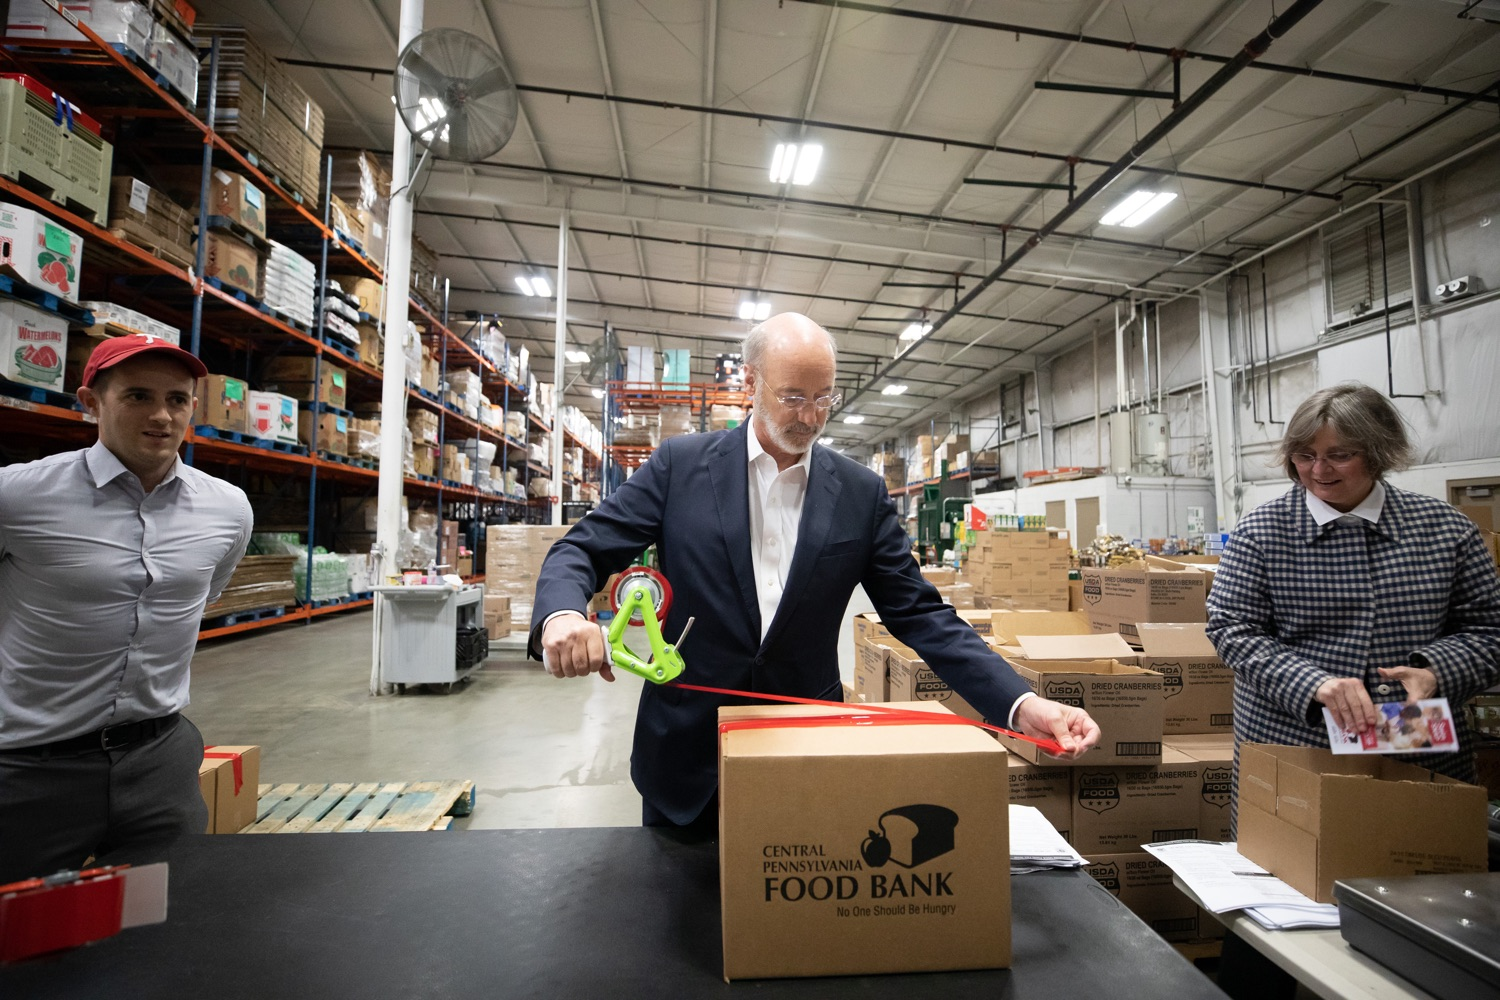 "<a href=""http://filesource.abacast.com/commonwealthofpa/photo/17632_gov_foodbank_volunteering_dz_017.jpg"" target=""_blank"">⇣ Download Photo<br></a>Governor Tom Wolf loading boxes of food at the Central Pennsylvania Food Bank.  The governor and first lady visit the Central Pennsylvania Food Bank in Harrisburg to participate in a volunteer project, packing boxes of food for veterans and their families. Ahead of Thanksgiving and the holiday season, Governor Tom Wolf and First Lady Frances Wolf are reminding Pennsylvanians of the importance of helping each other. Harrisburg, PA  Tuesday November 26, 2019"